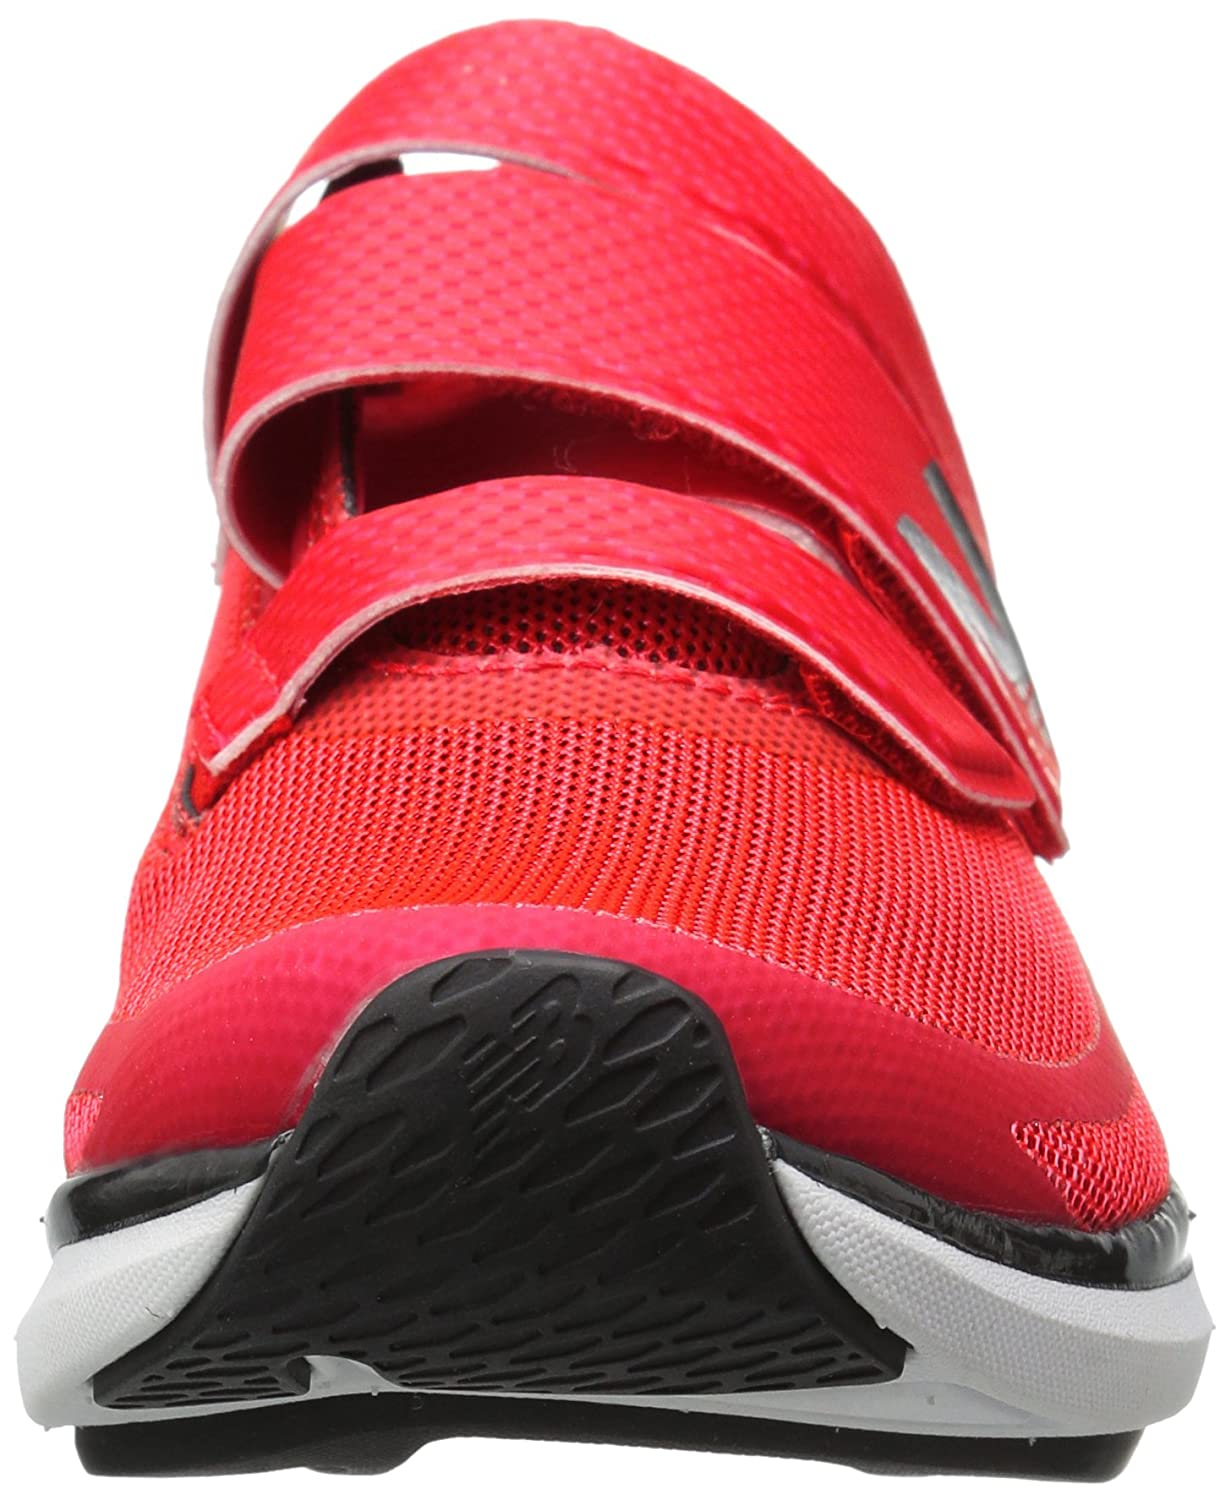 New Balance Women's 09v1 B(M) Training Shoe B01N6KKBKB 7.5 B(M) 09v1 US|Energy Red/Phantom 042f22